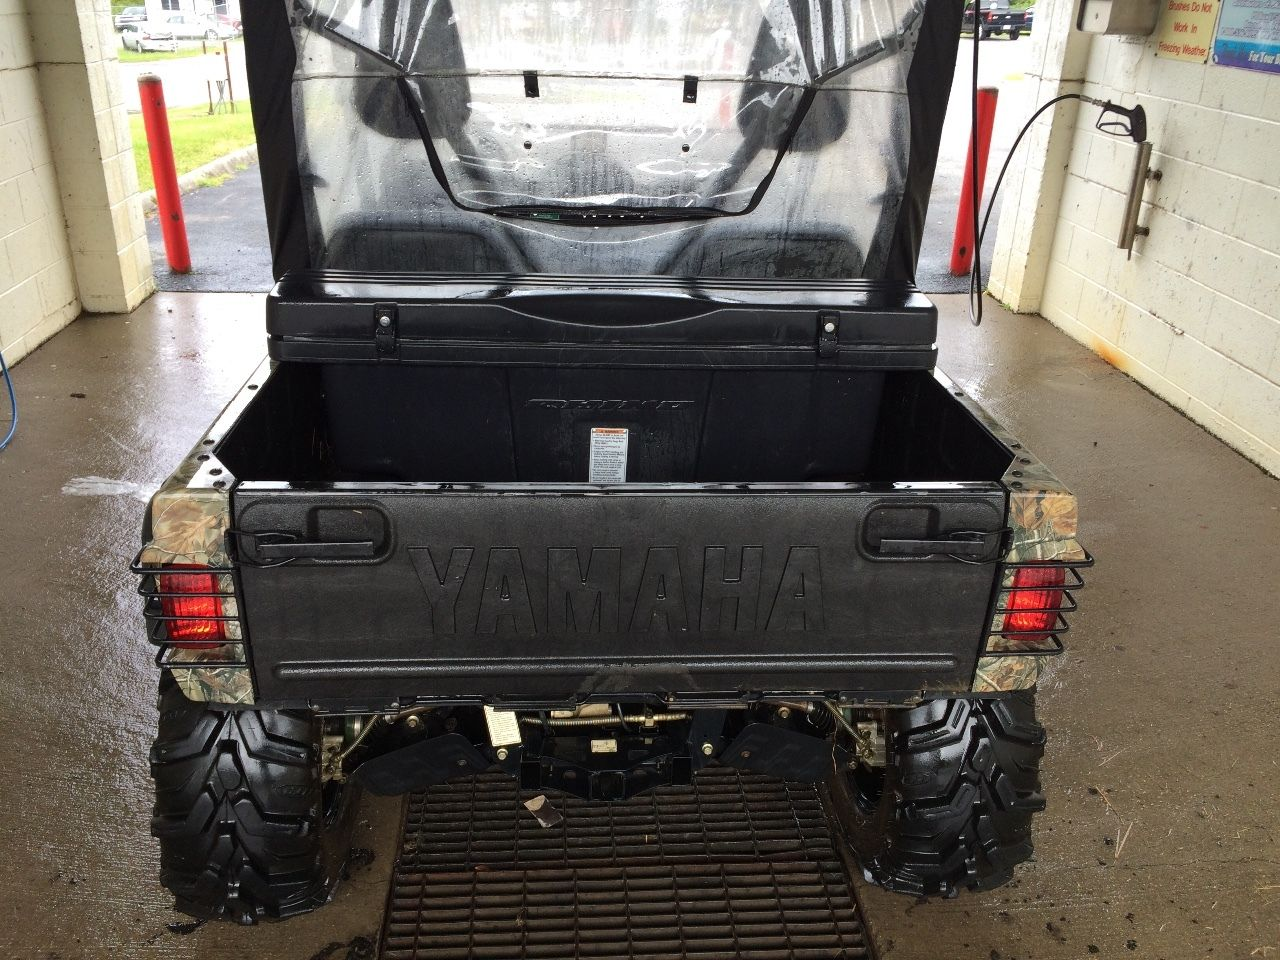 Used 2012 yamaha rhino 700 fi auto 4x4 atvs for sale in west used 2012 yamaha rhino 700 fi auto 4x4 atvs for sale in west virginia mozeypictures Choice Image